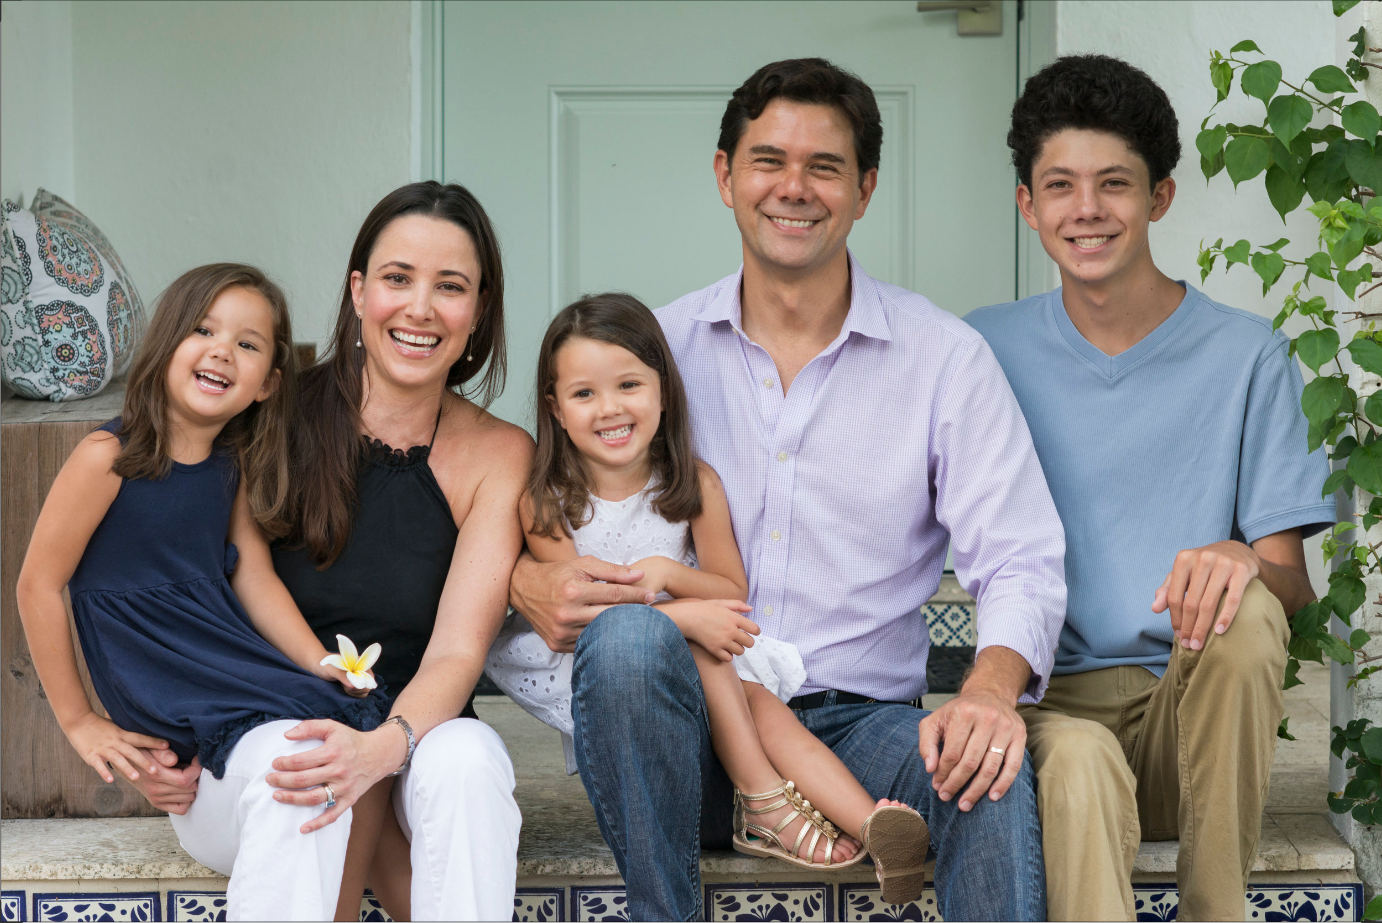 They say that it's best to get any skeletons out of the closet early in a political race. In the spirit of transparency, the following is my in-depth history. On the surface, I can humbly say that I have a beautiful family. My wife Juliana Benedini is the best veterinarian around. We have two daughters that eat lots and sleep little. My son August is close to graduating high school now, keeping up with grades, college applications, and lifelong interests like working on old cars and playing the French horn. We also have two dogs and two cats. Life is good. If you'd like the full version of my story, read on...